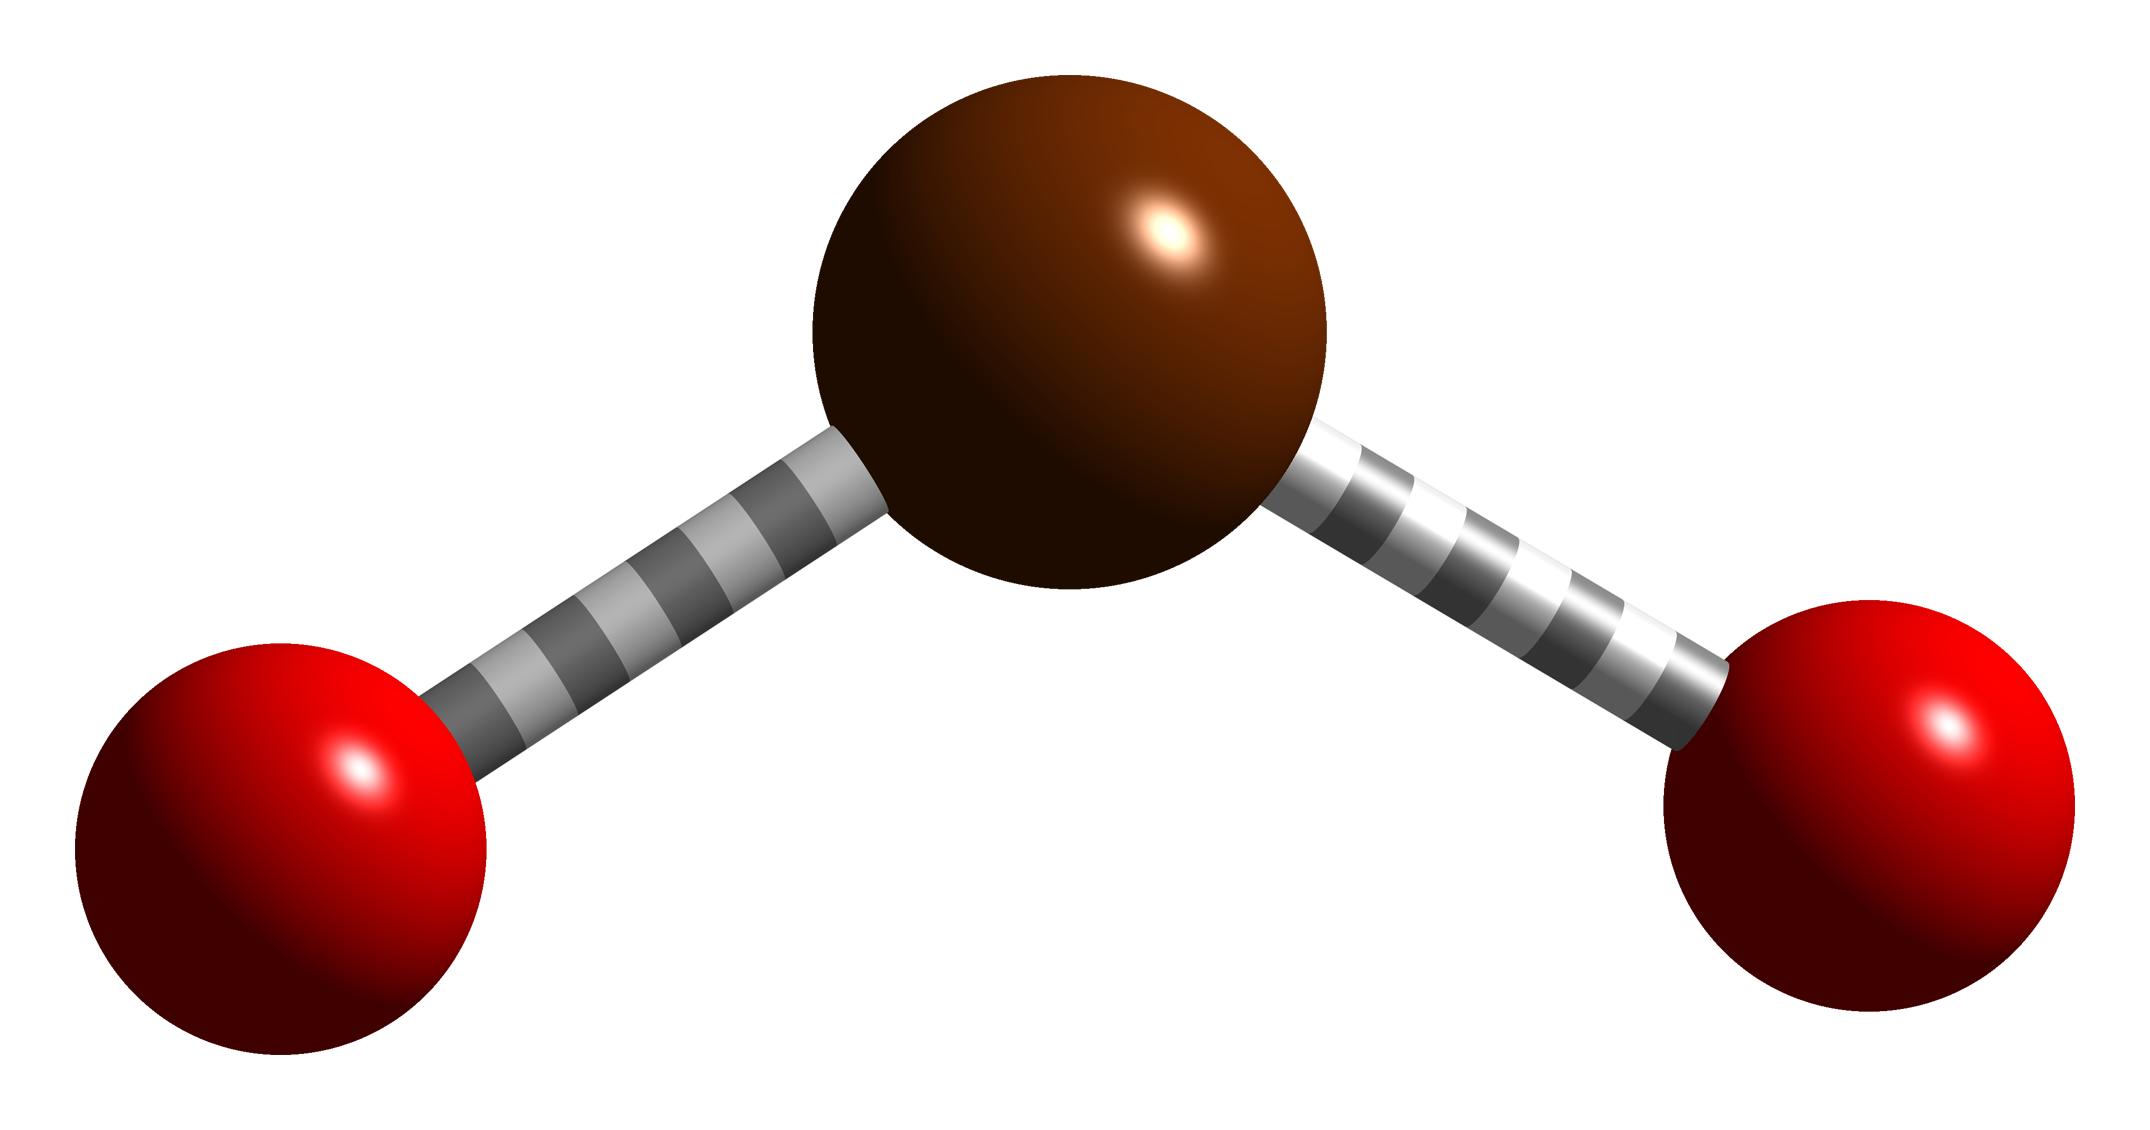 File:Bromine-dioxide-MP2-CM-3D-balls.png - Wikimedia Commons